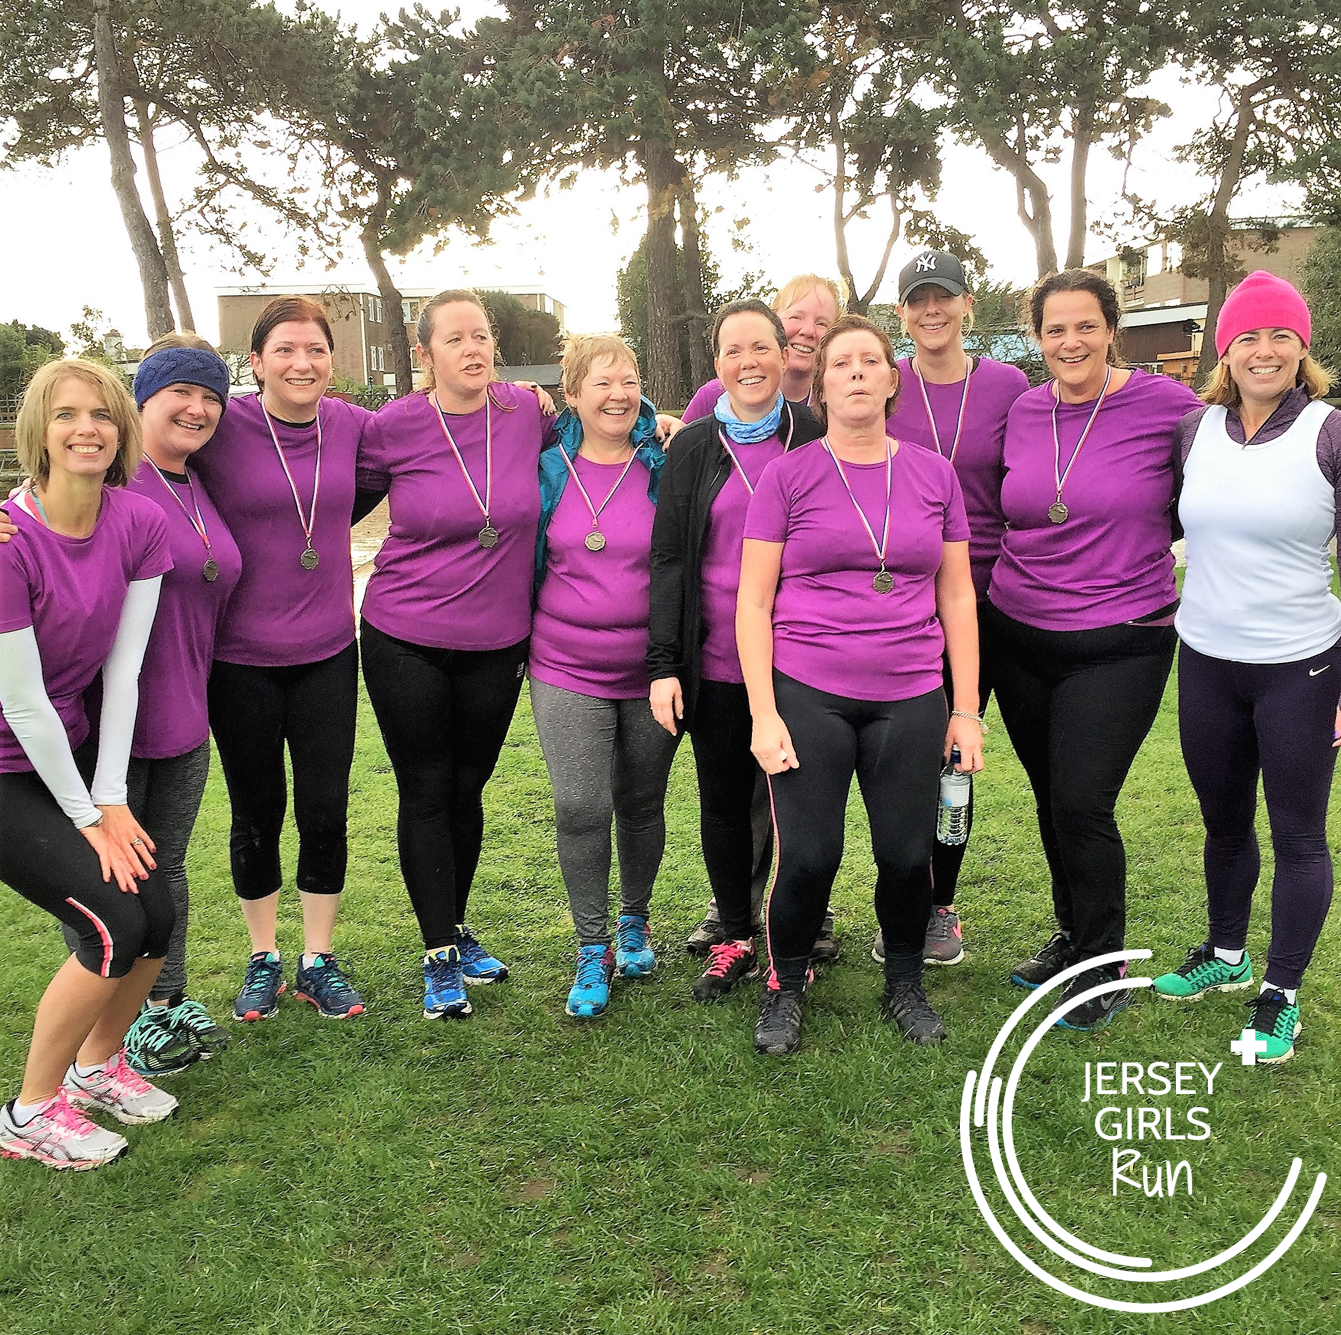 12 NOVEMBER 2016 - second group of C25K graduates at parkrun - CONGRATULATIONS to our second group of C25K graduates who completed their nine week C25K program with JERSEY GIRLS and headed to Jersey's parkrun to run their 5k.These women battled through some atrocious autumnal weather but hung in there and their dedication paid off.